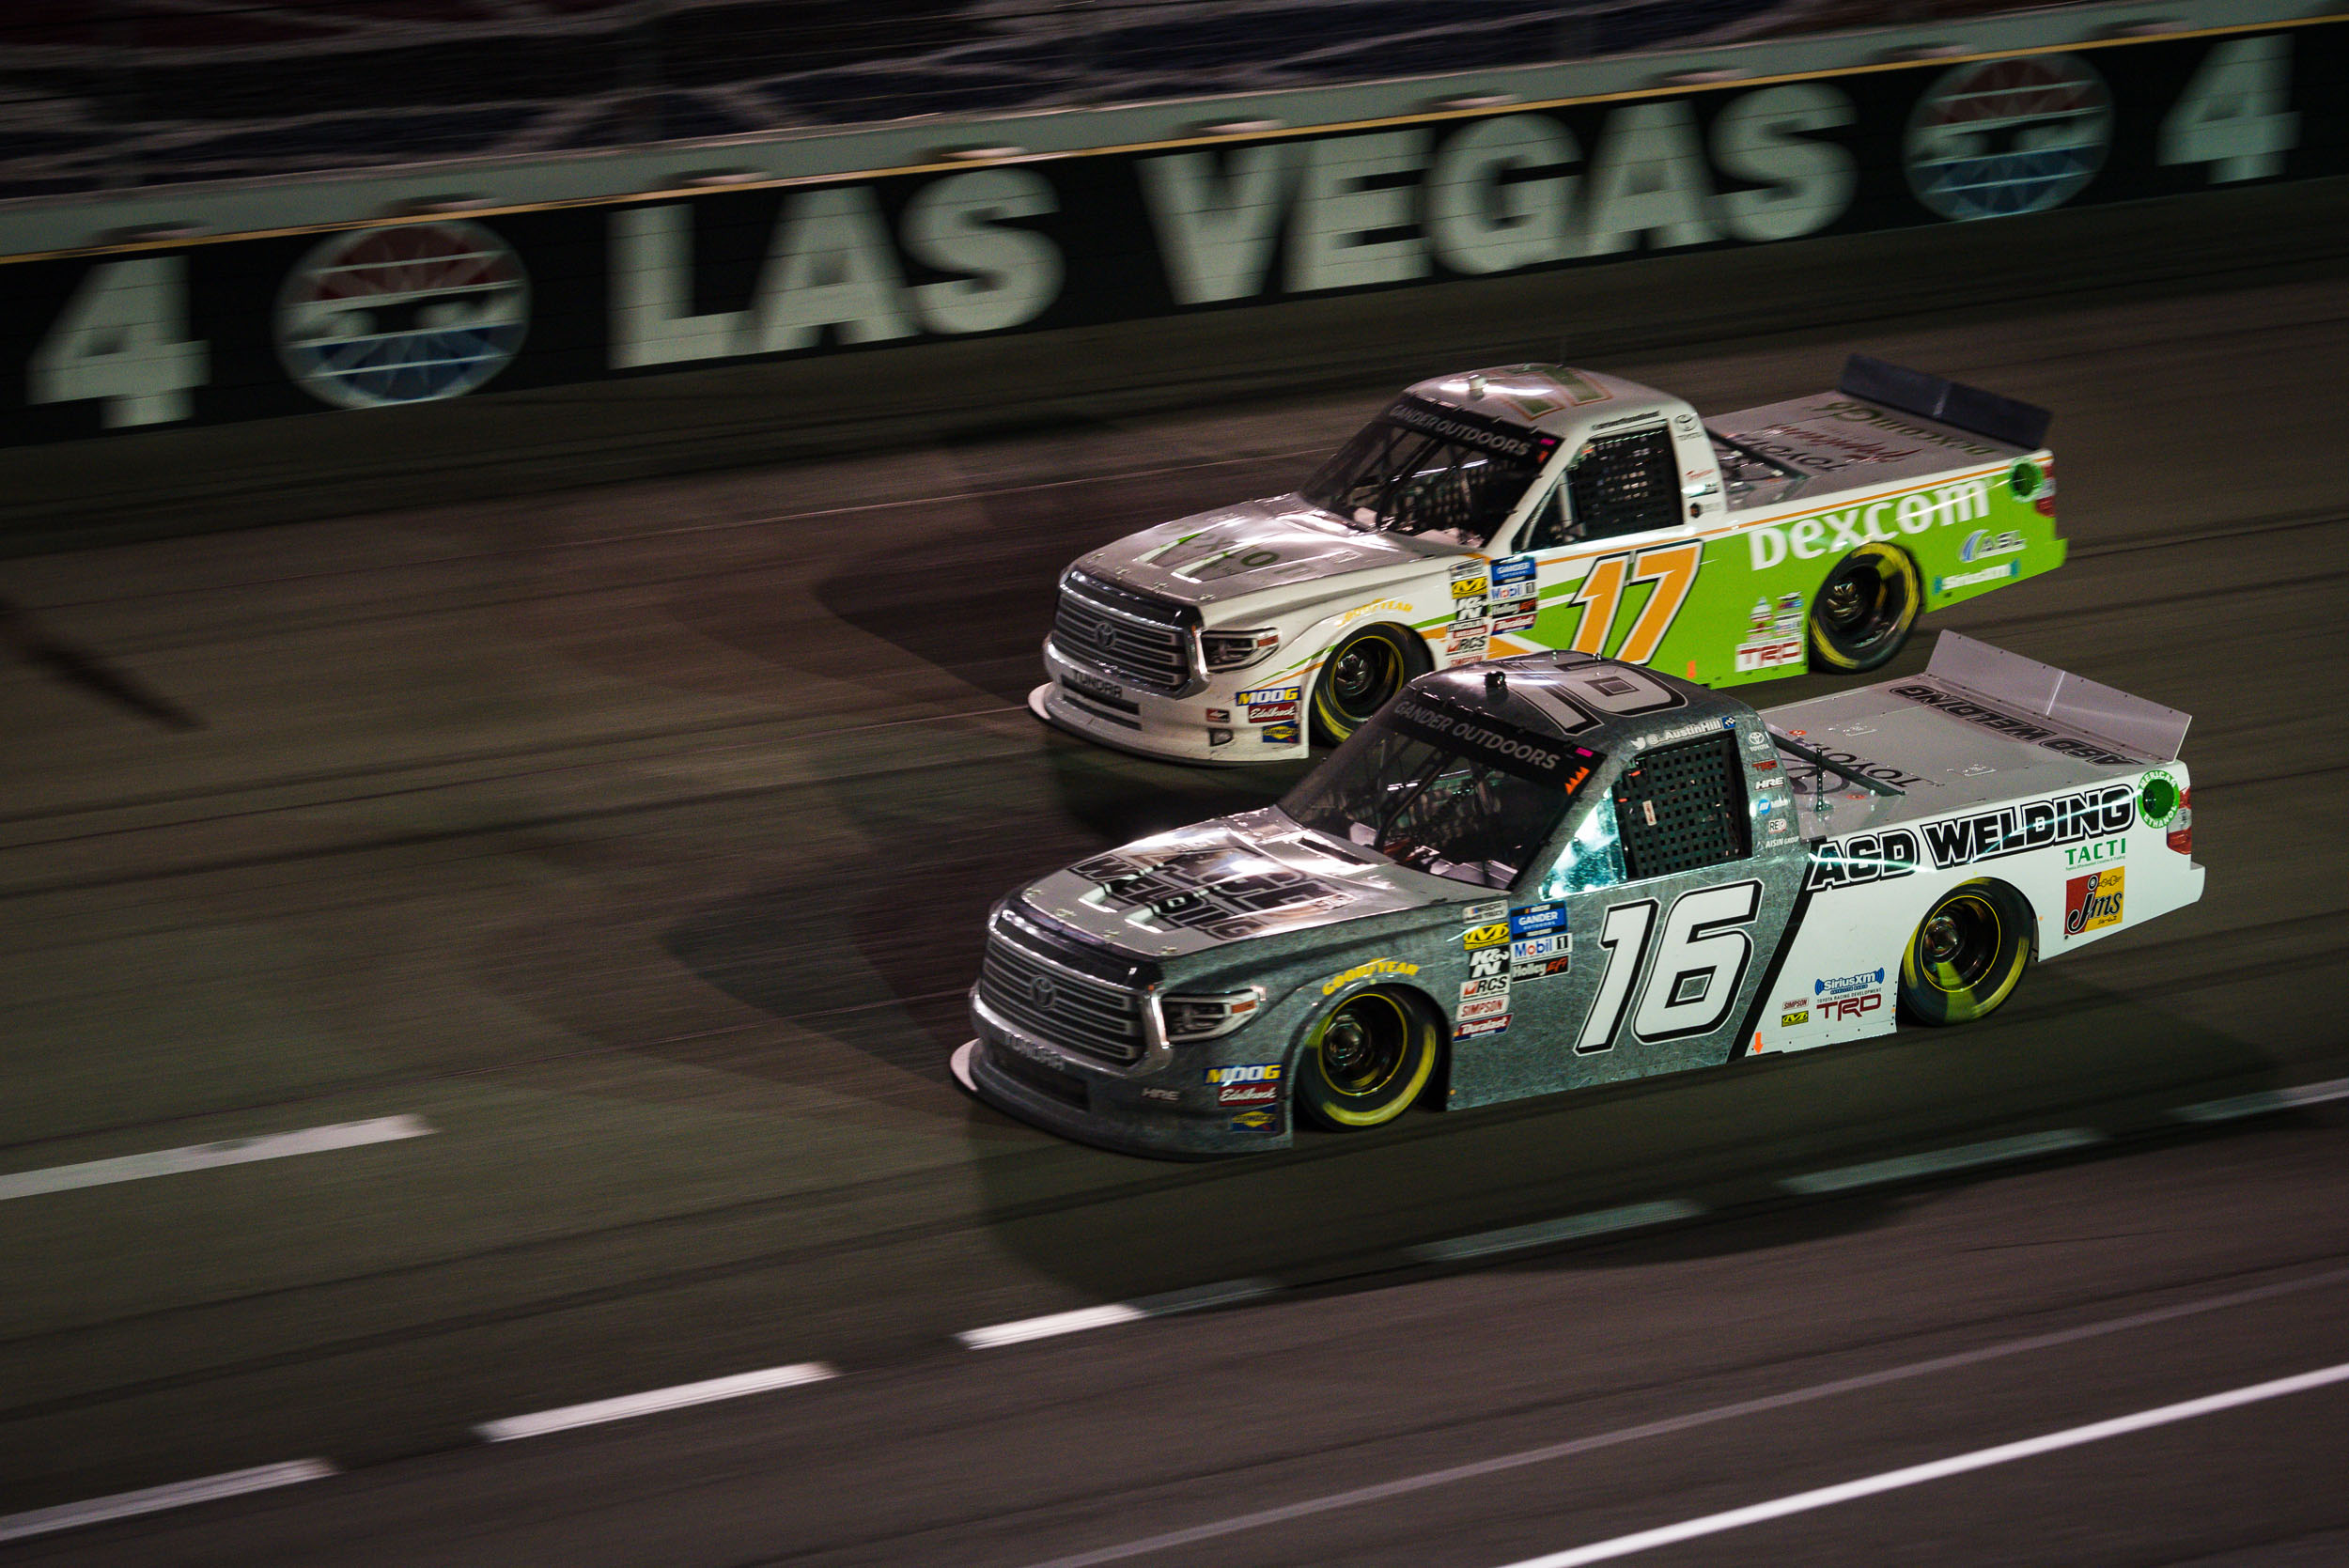 Mar. 1: Las Vegas Motor Speedway - Start: 6thFinish: 30th